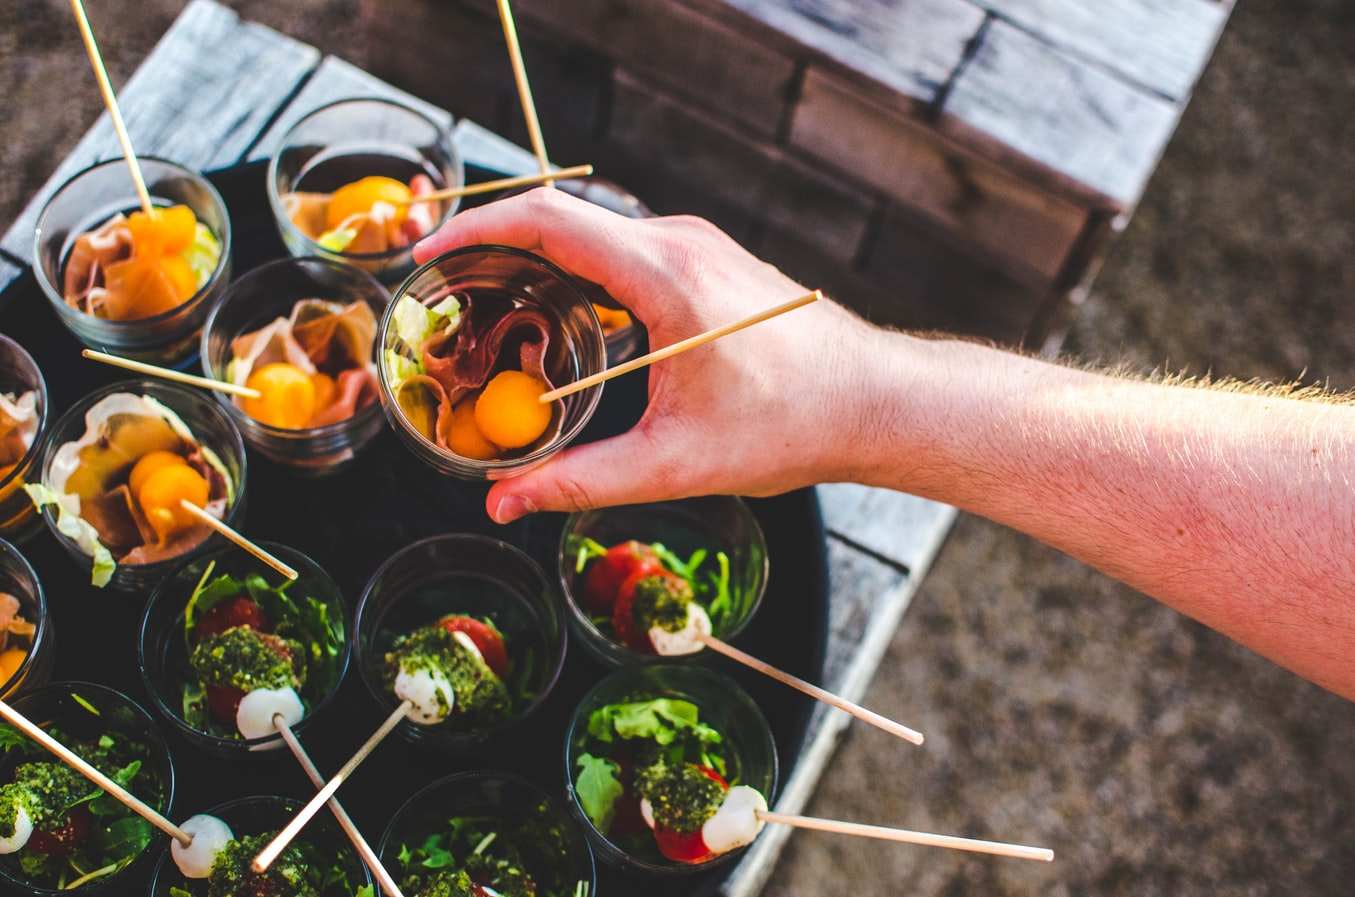 7 Types Of Catering Services: Which One Is The Perfect Choice For The Event You're Organizing? | Uncustomary